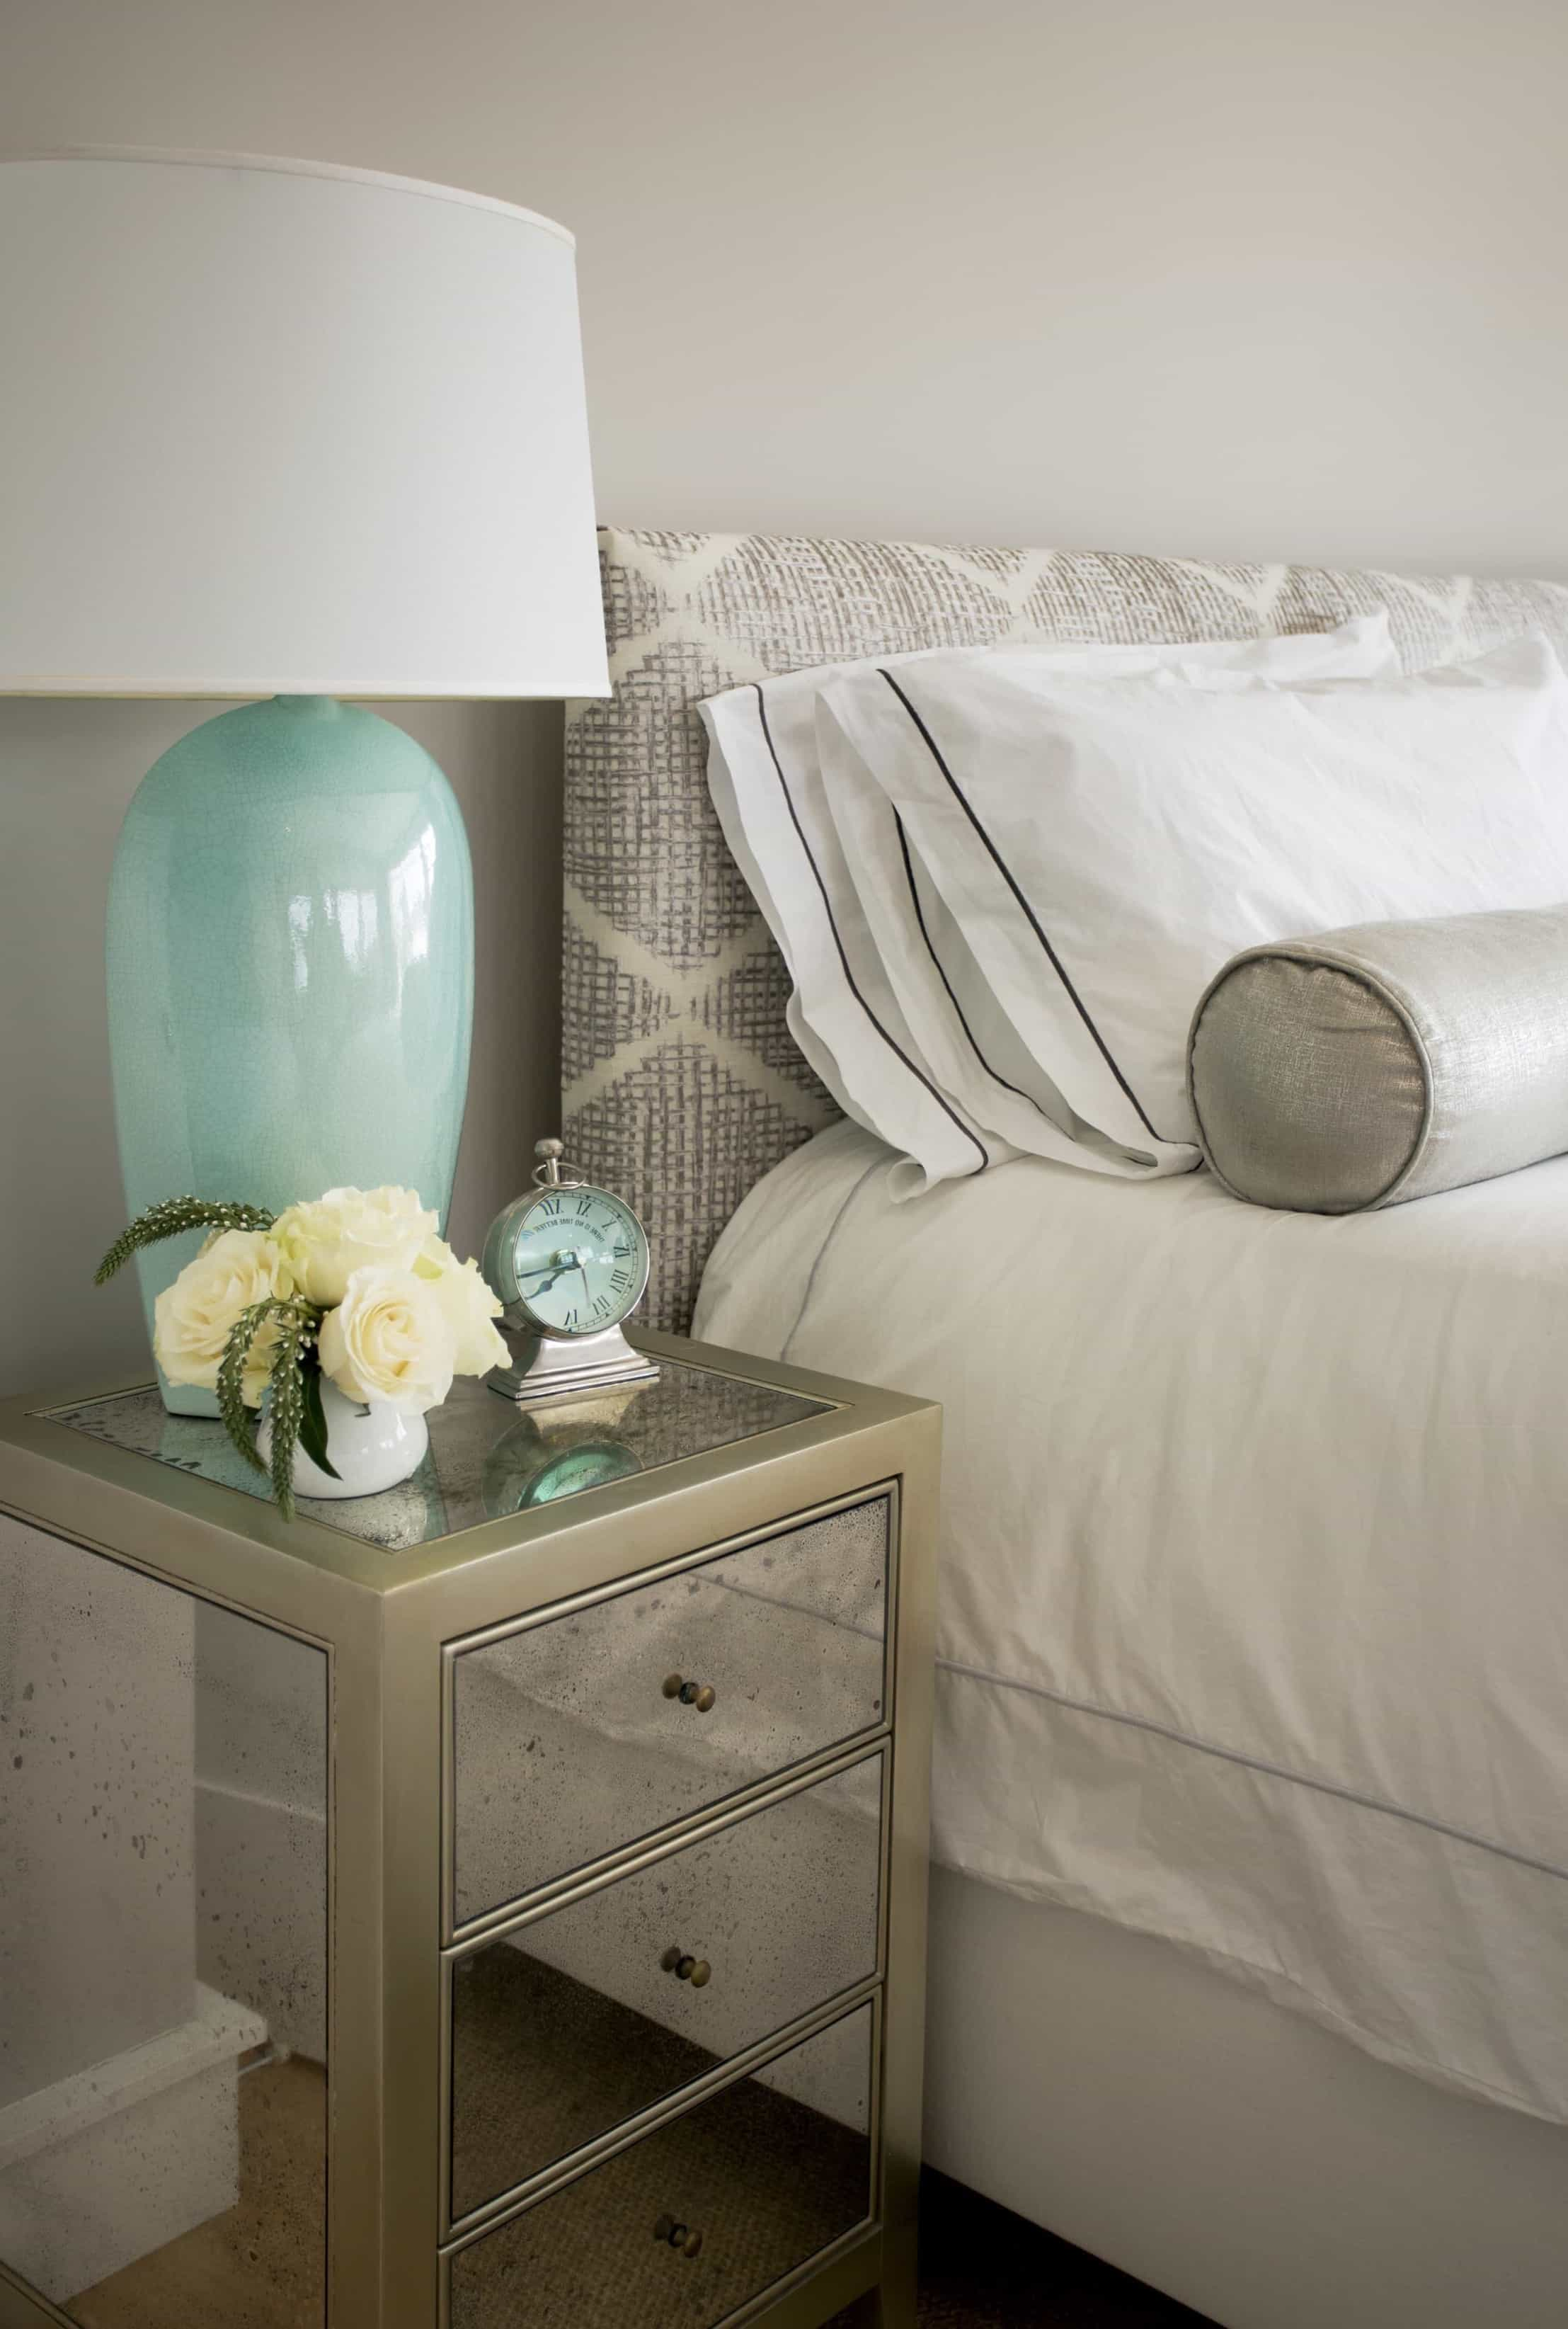 Featured Image of Elegant Coastal Bedroom With Mirrored Side Table